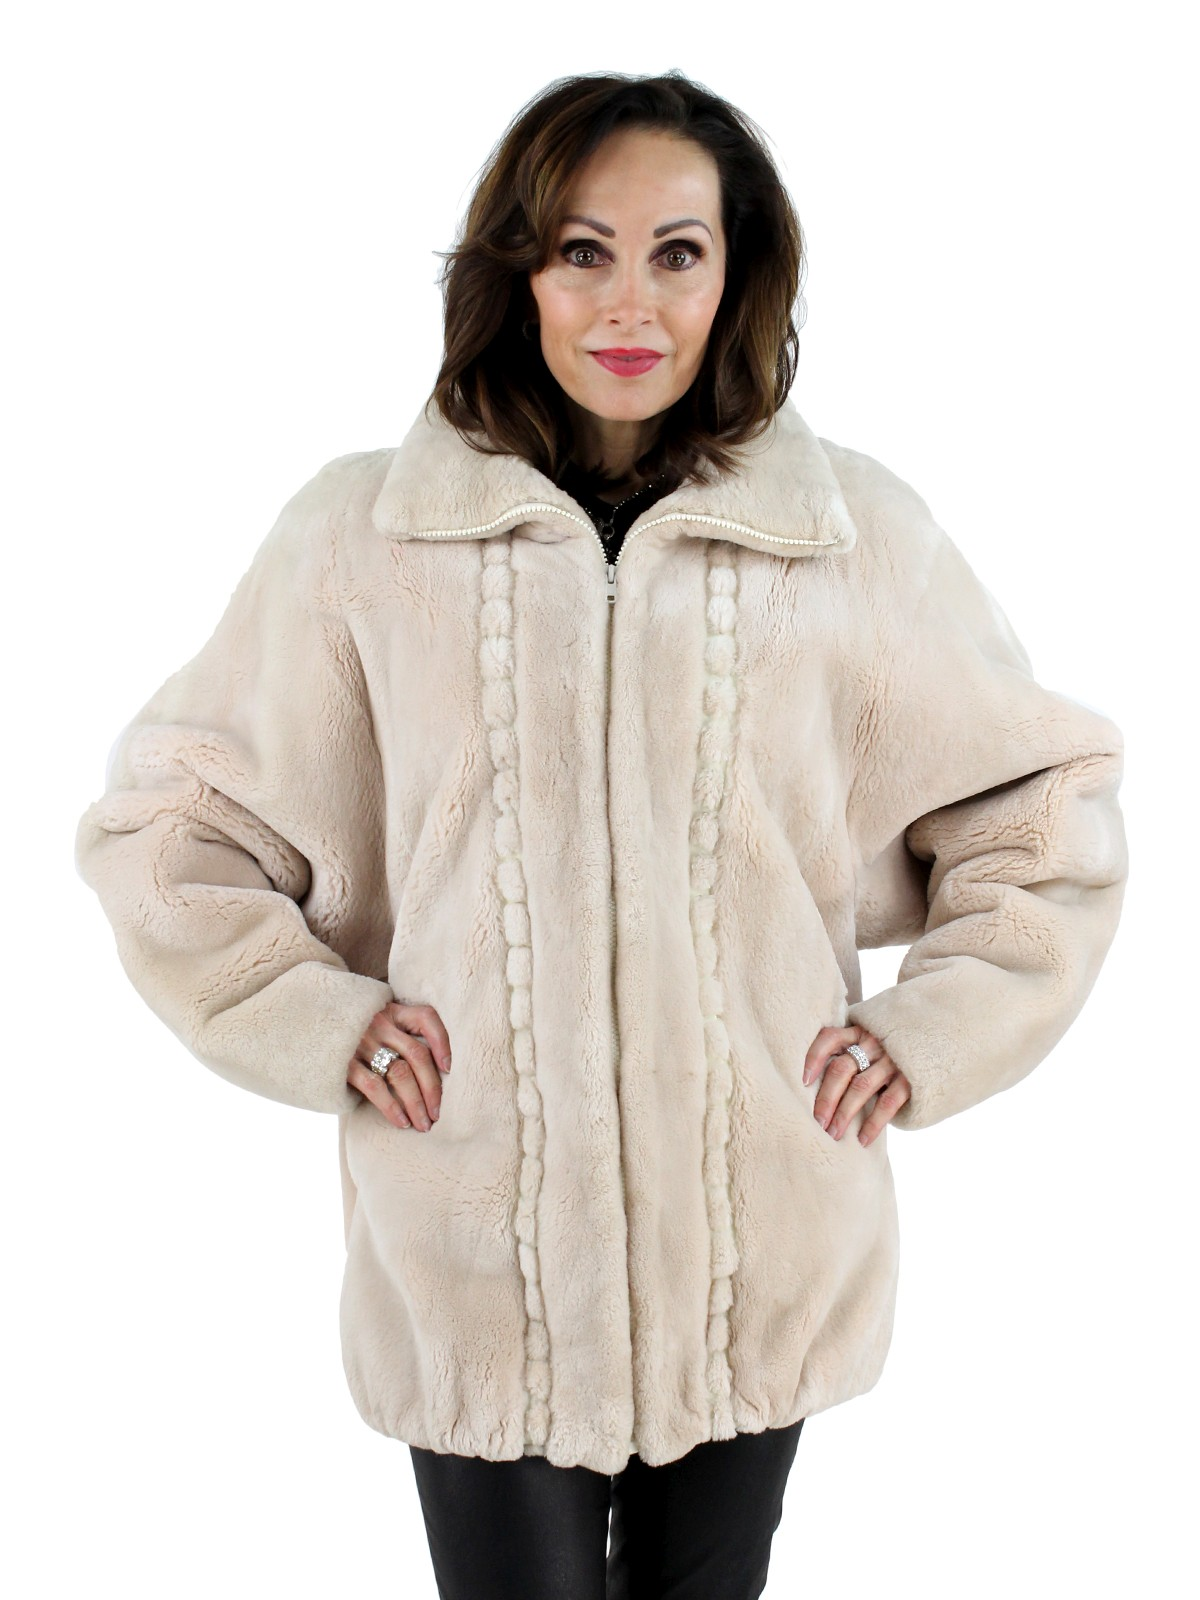 c4145df88 Musi Cashmere Sheared Beaver Fur Jacket - Women's Large| Estate Furs